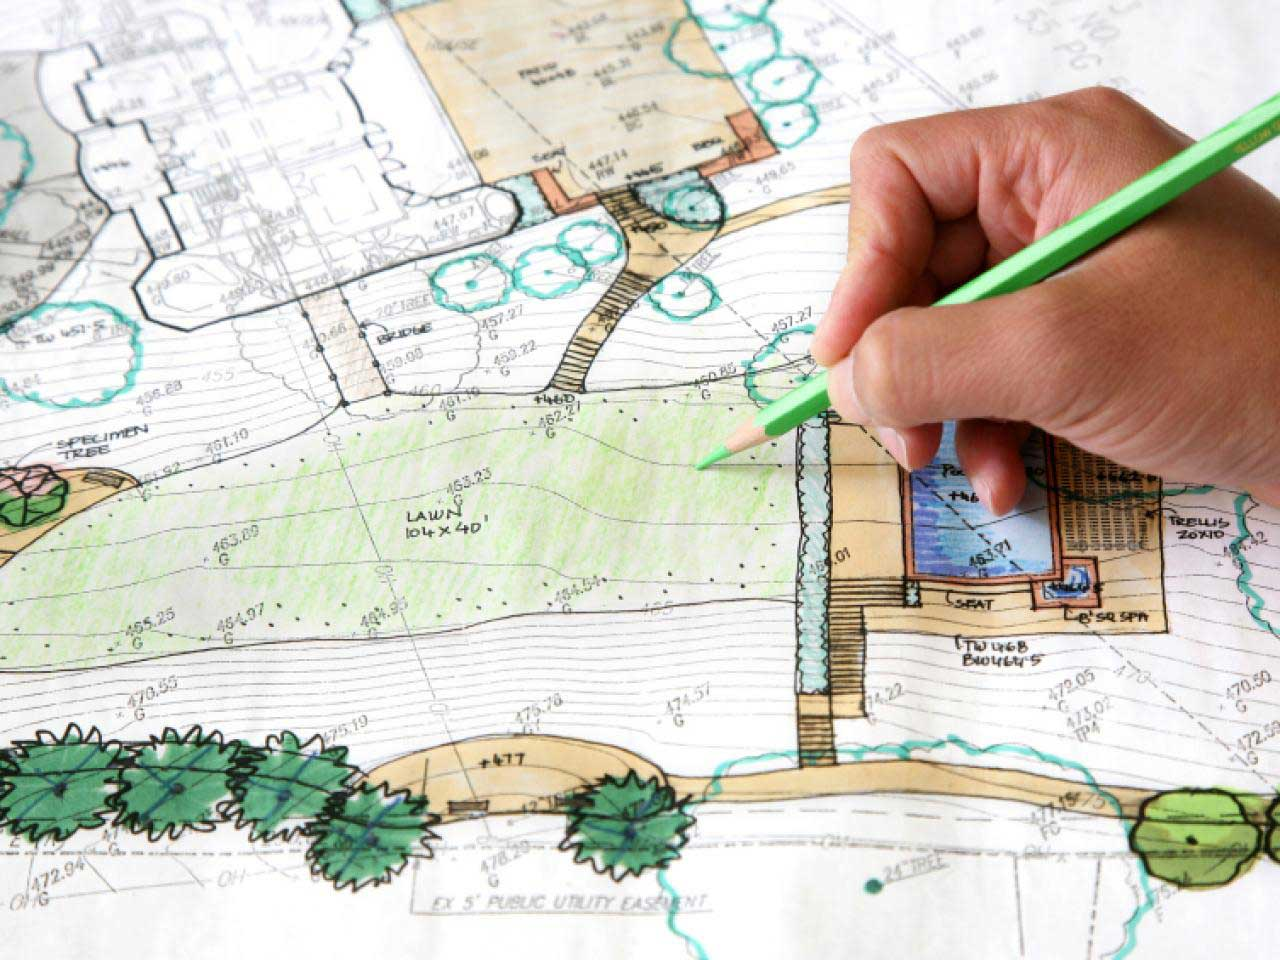 Landscaping Sketch Map